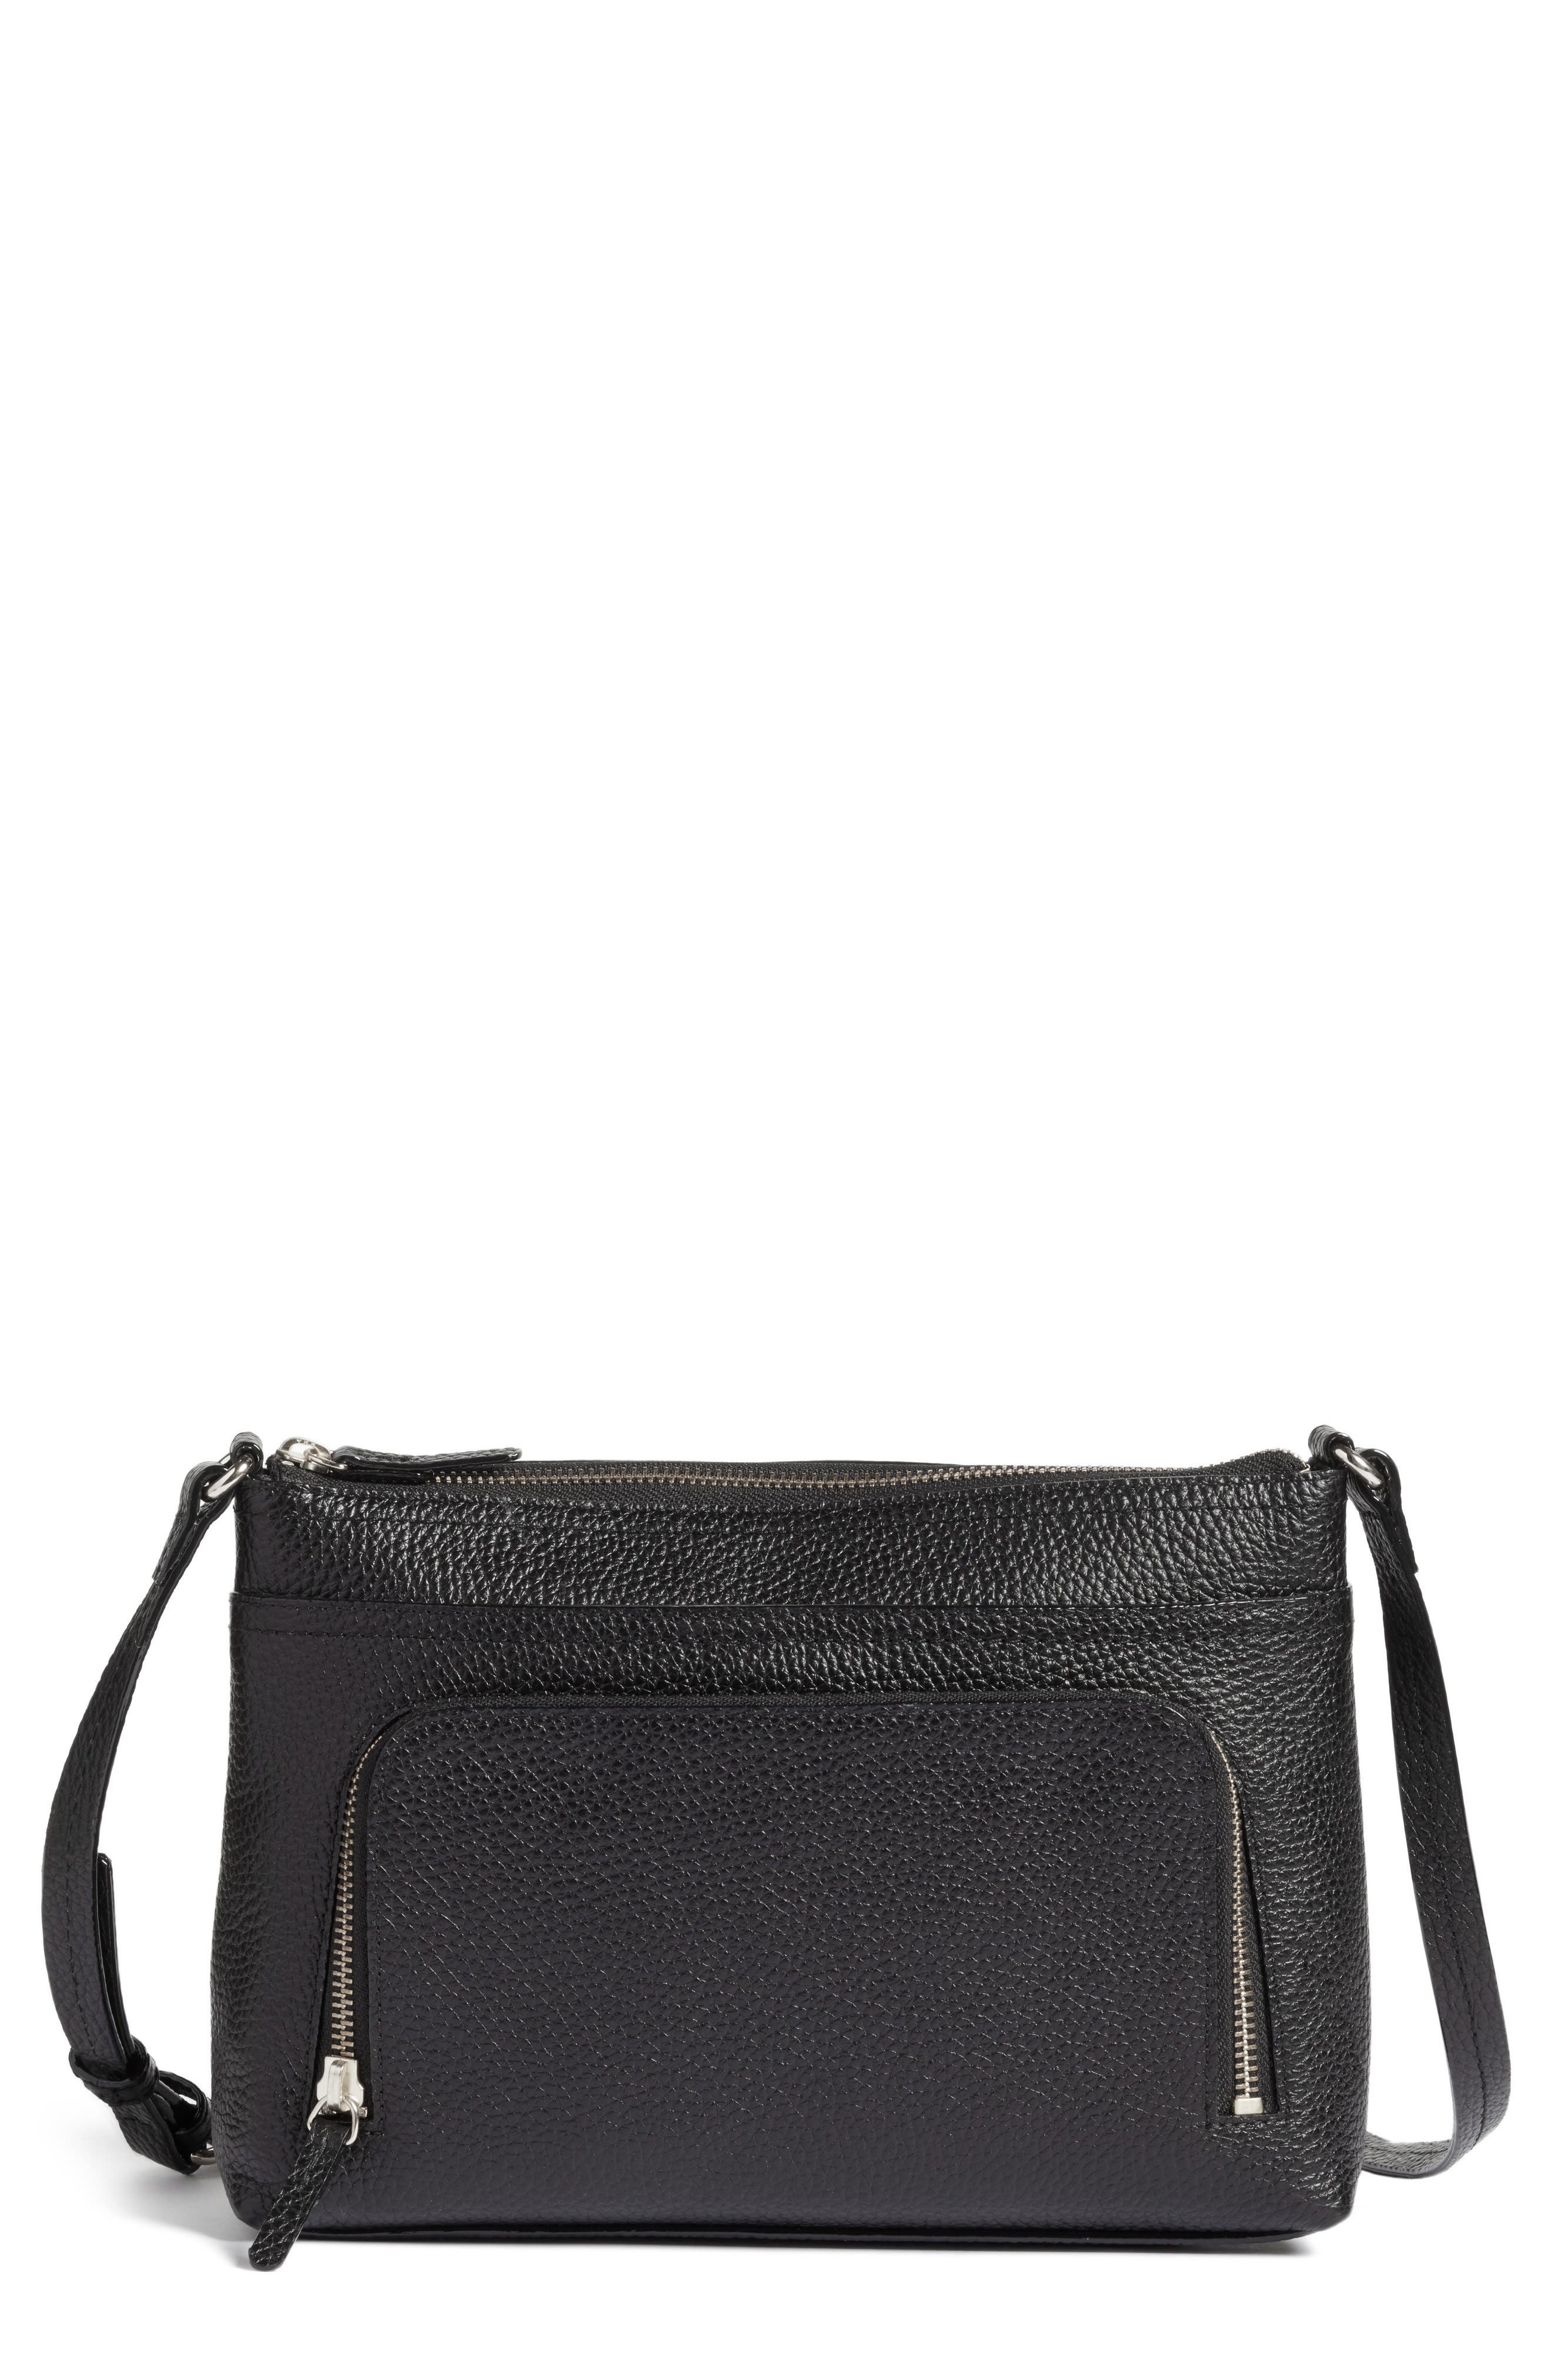 Main Image - Nordstrom Pebbled Leather Crossbody Bag